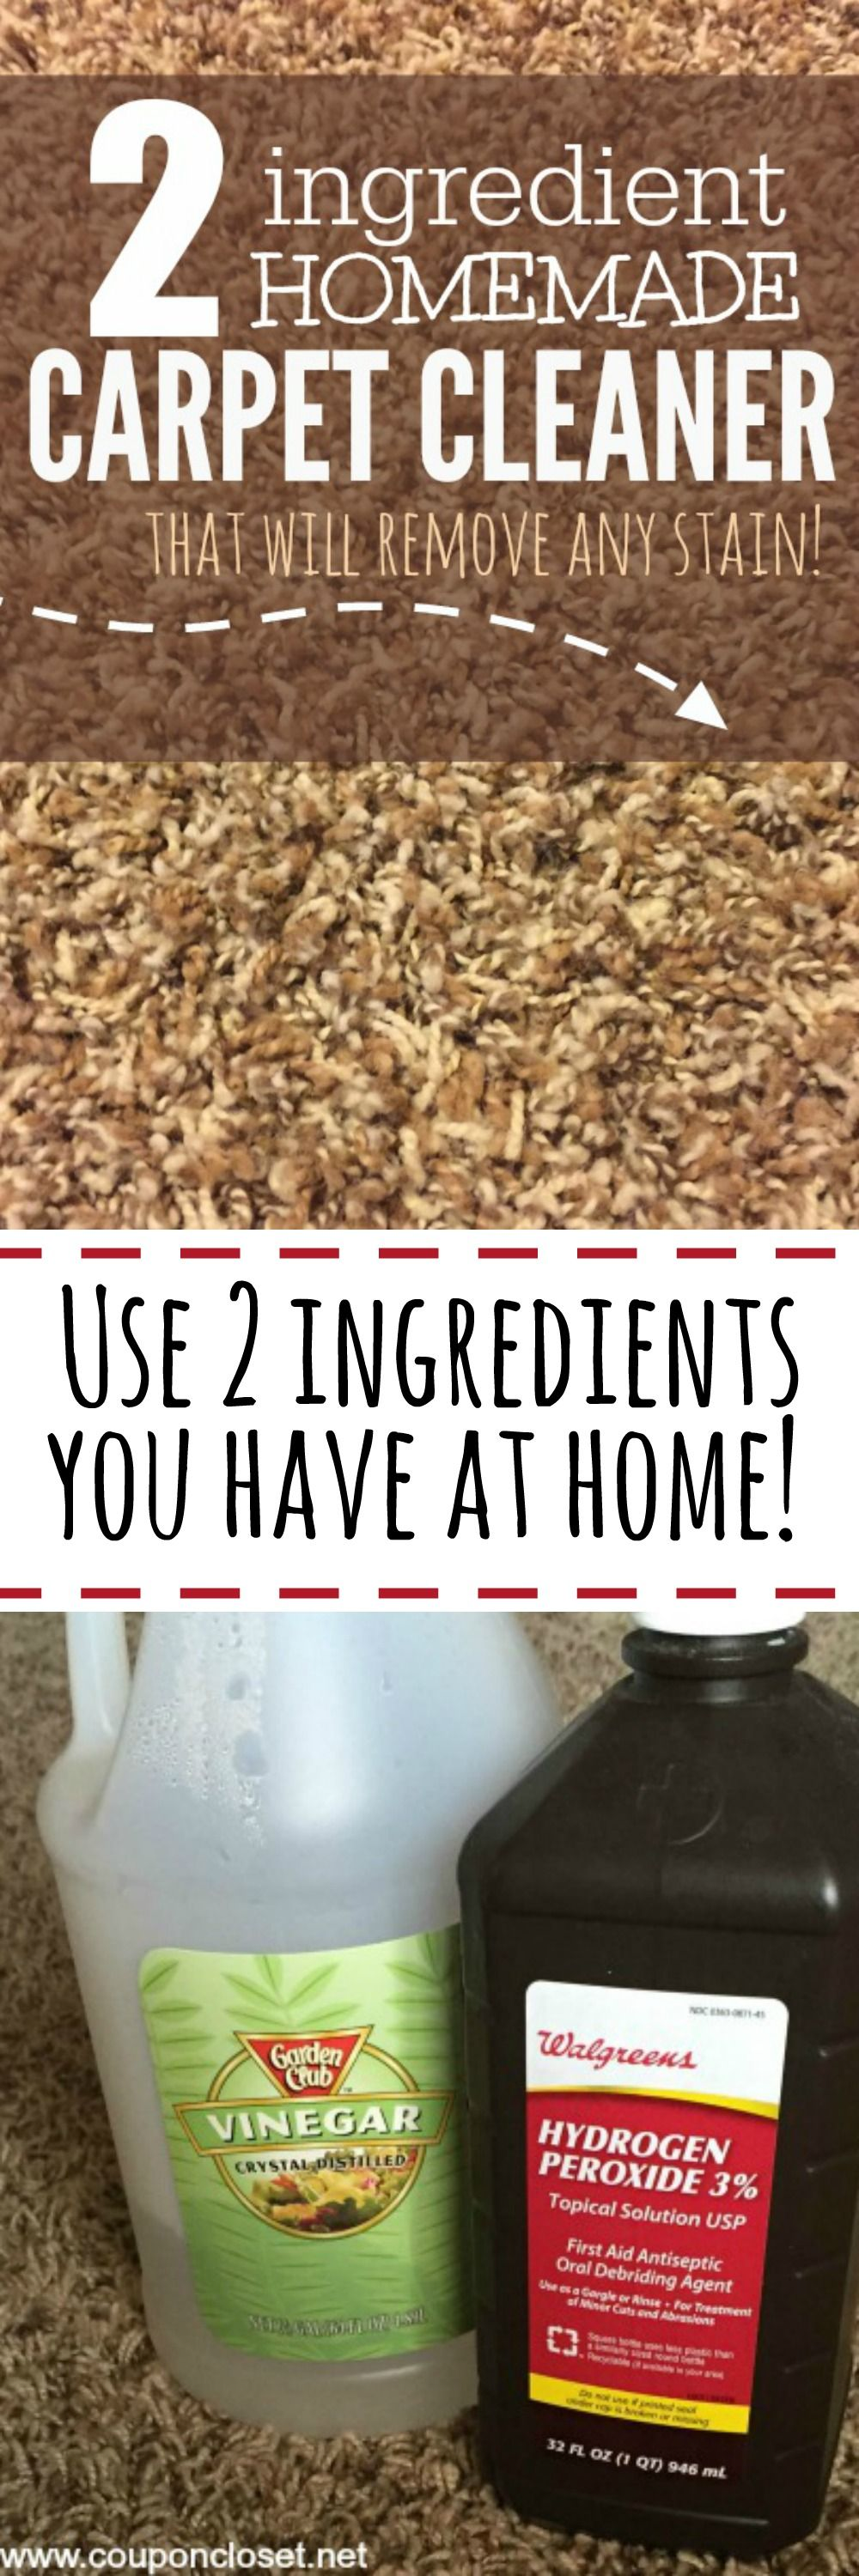 Baking Powder And Vinegar For Cleaning